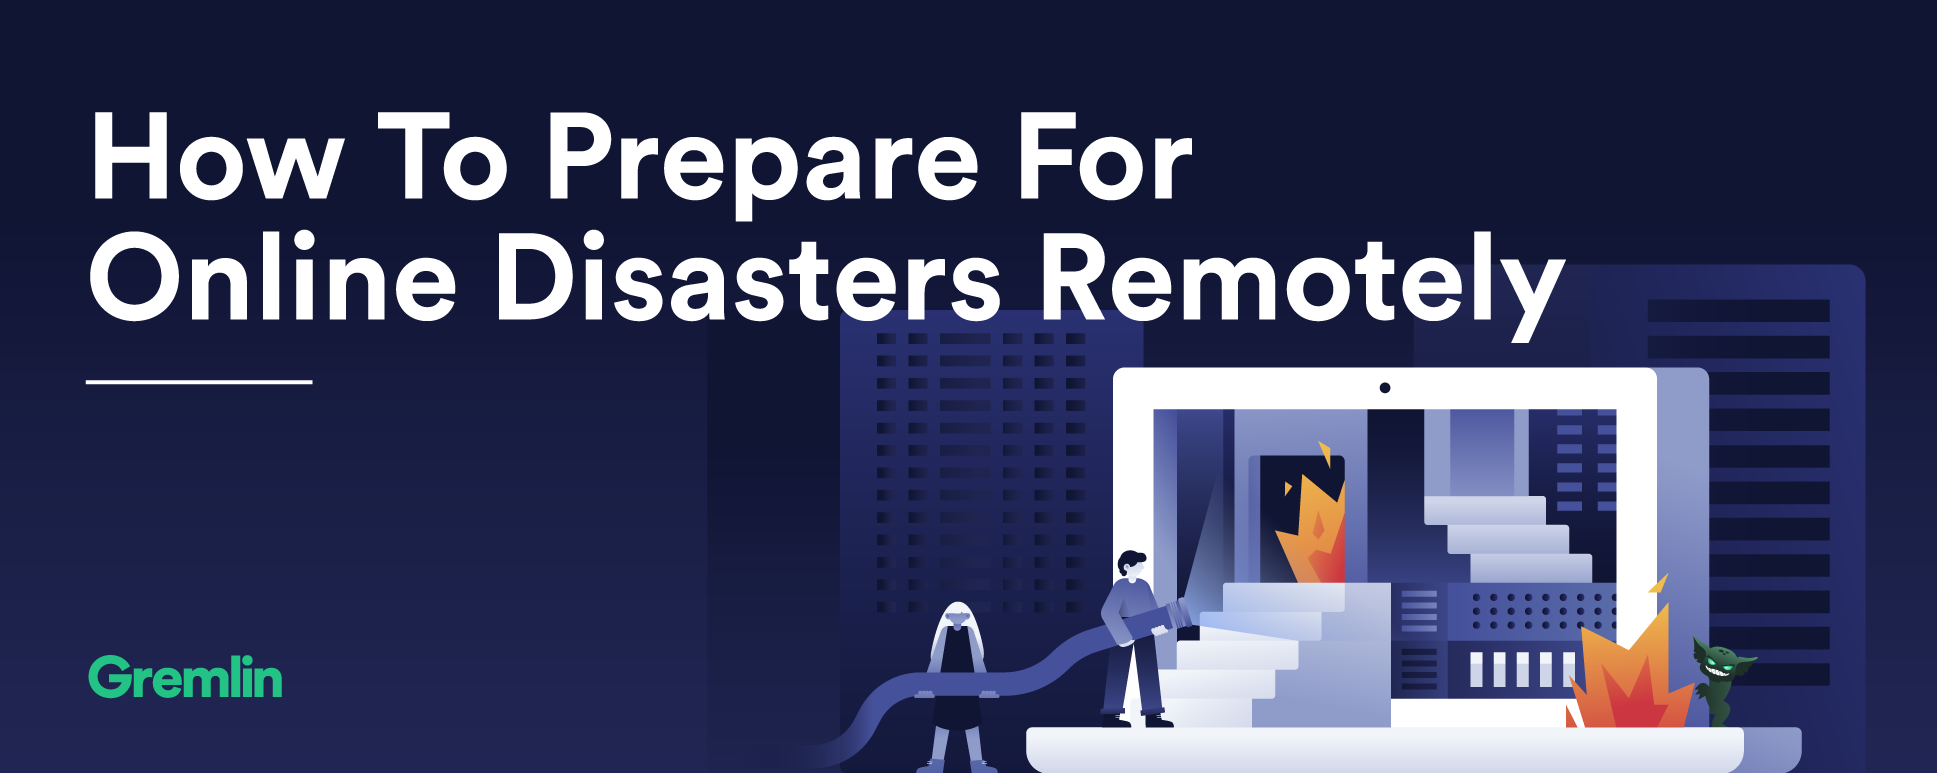 How To Prepare For Online Disasters Remotely